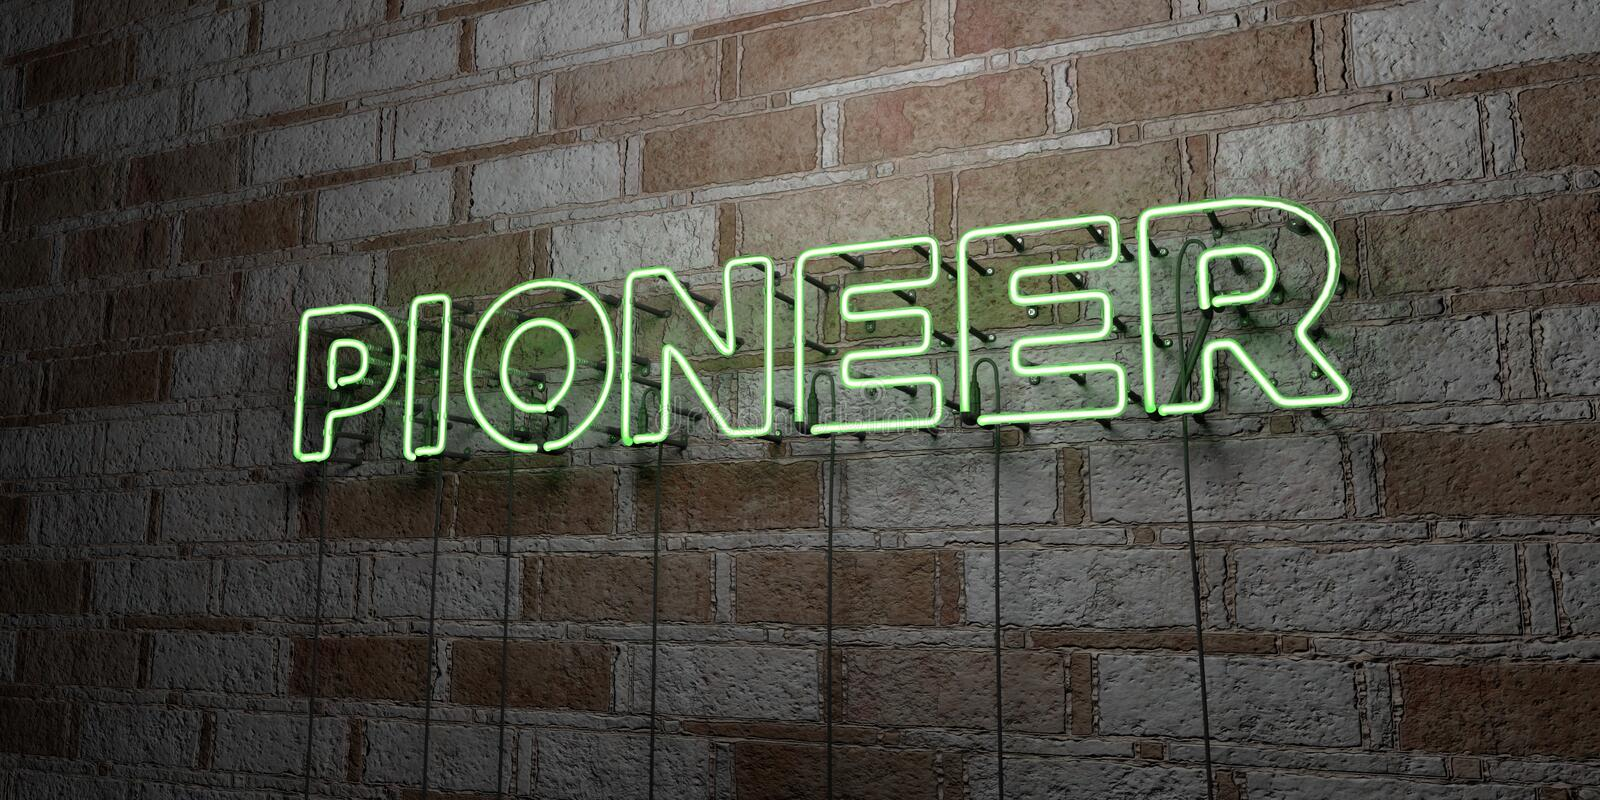 PIONEER - Glowing Neon Sign on stonework wall - 3D rendered royalty free stock illustration. Can be used for online banner ads and direct mailers stock illustration